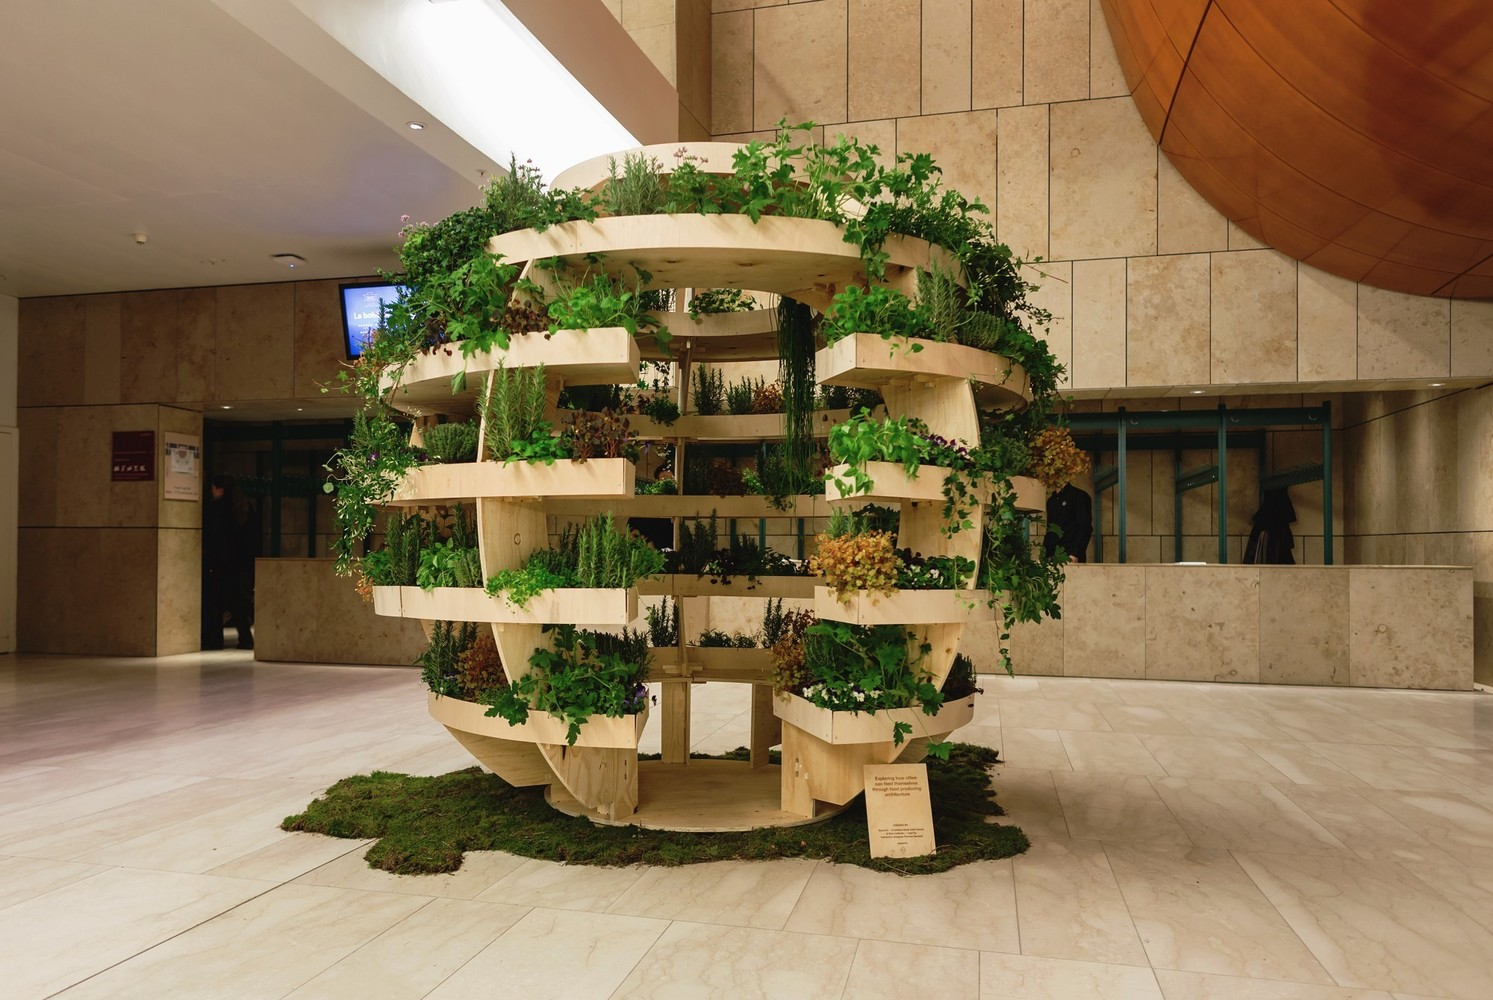 IKEA Releases Instructions for a DIY Sustainable Indoor Garden